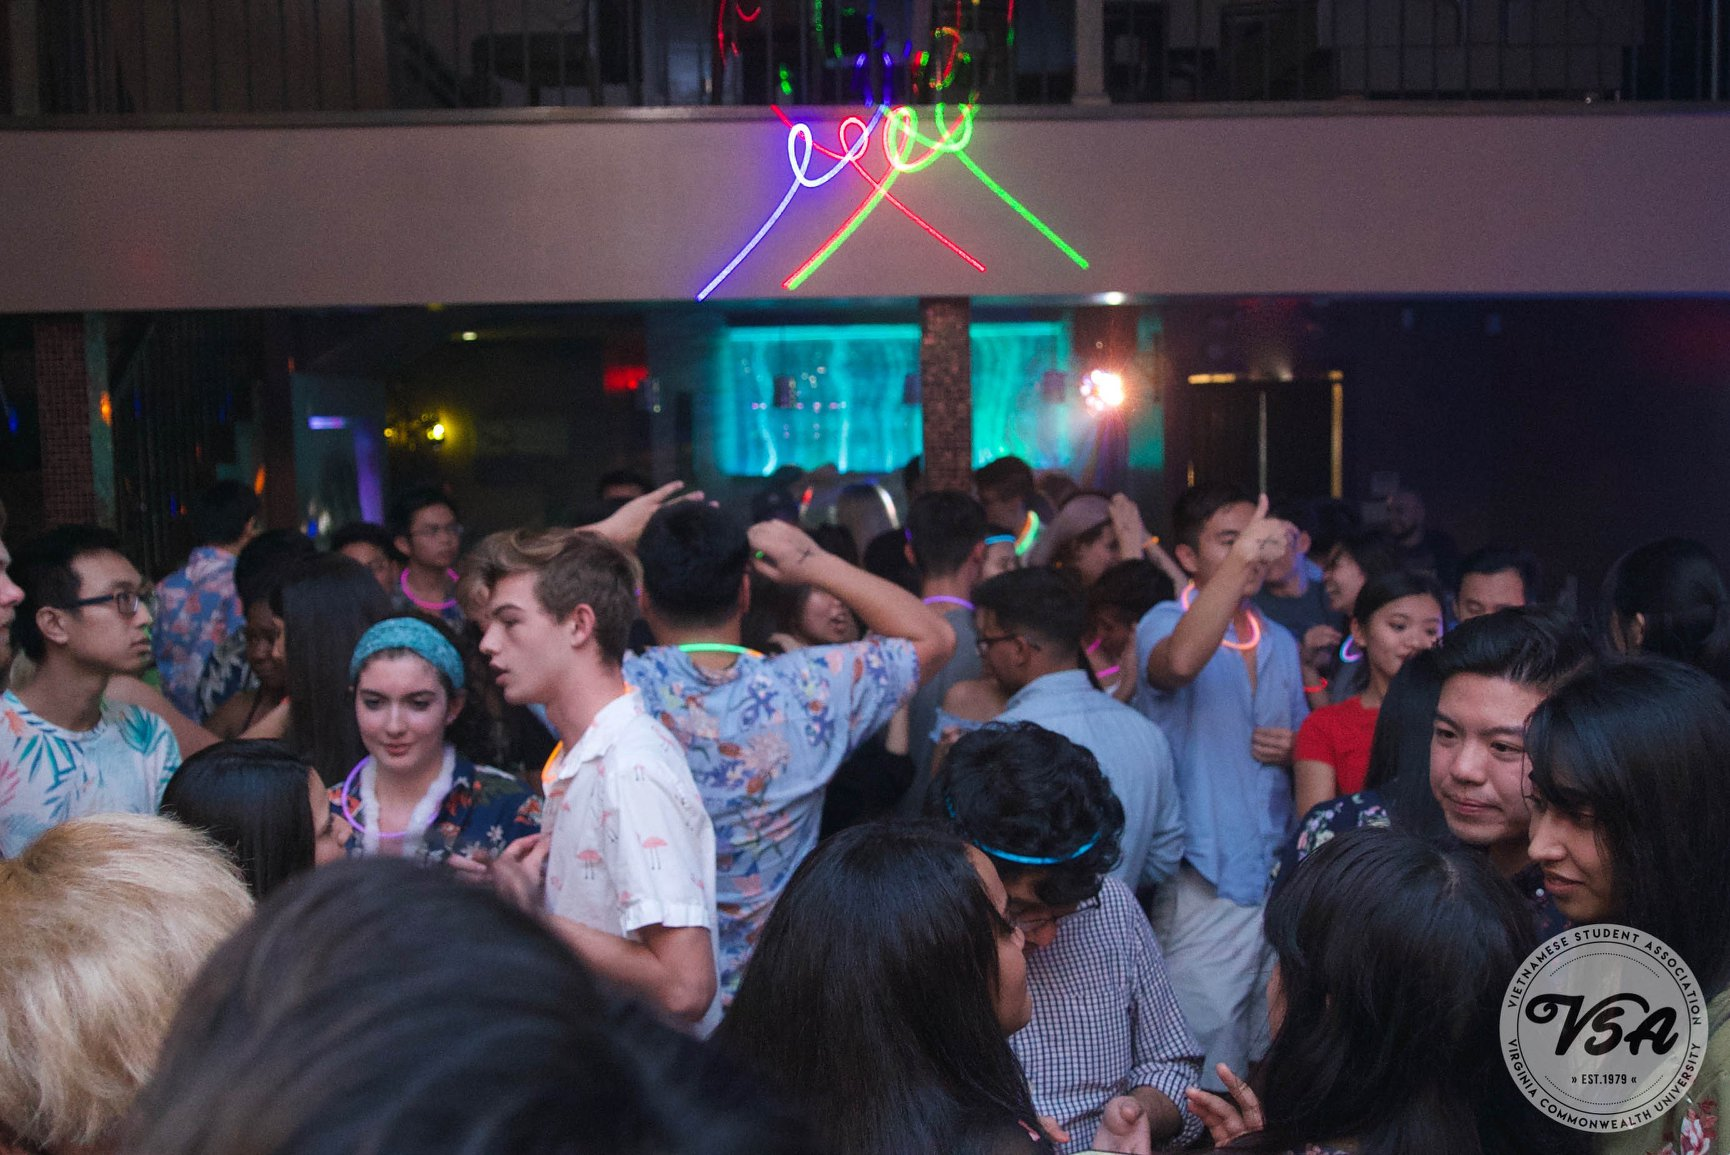 VSA@VCU started the year off right with their Welcome Back Beach Luau Out Party at Level!  It was filled with good times, memories, and plenty of smiles